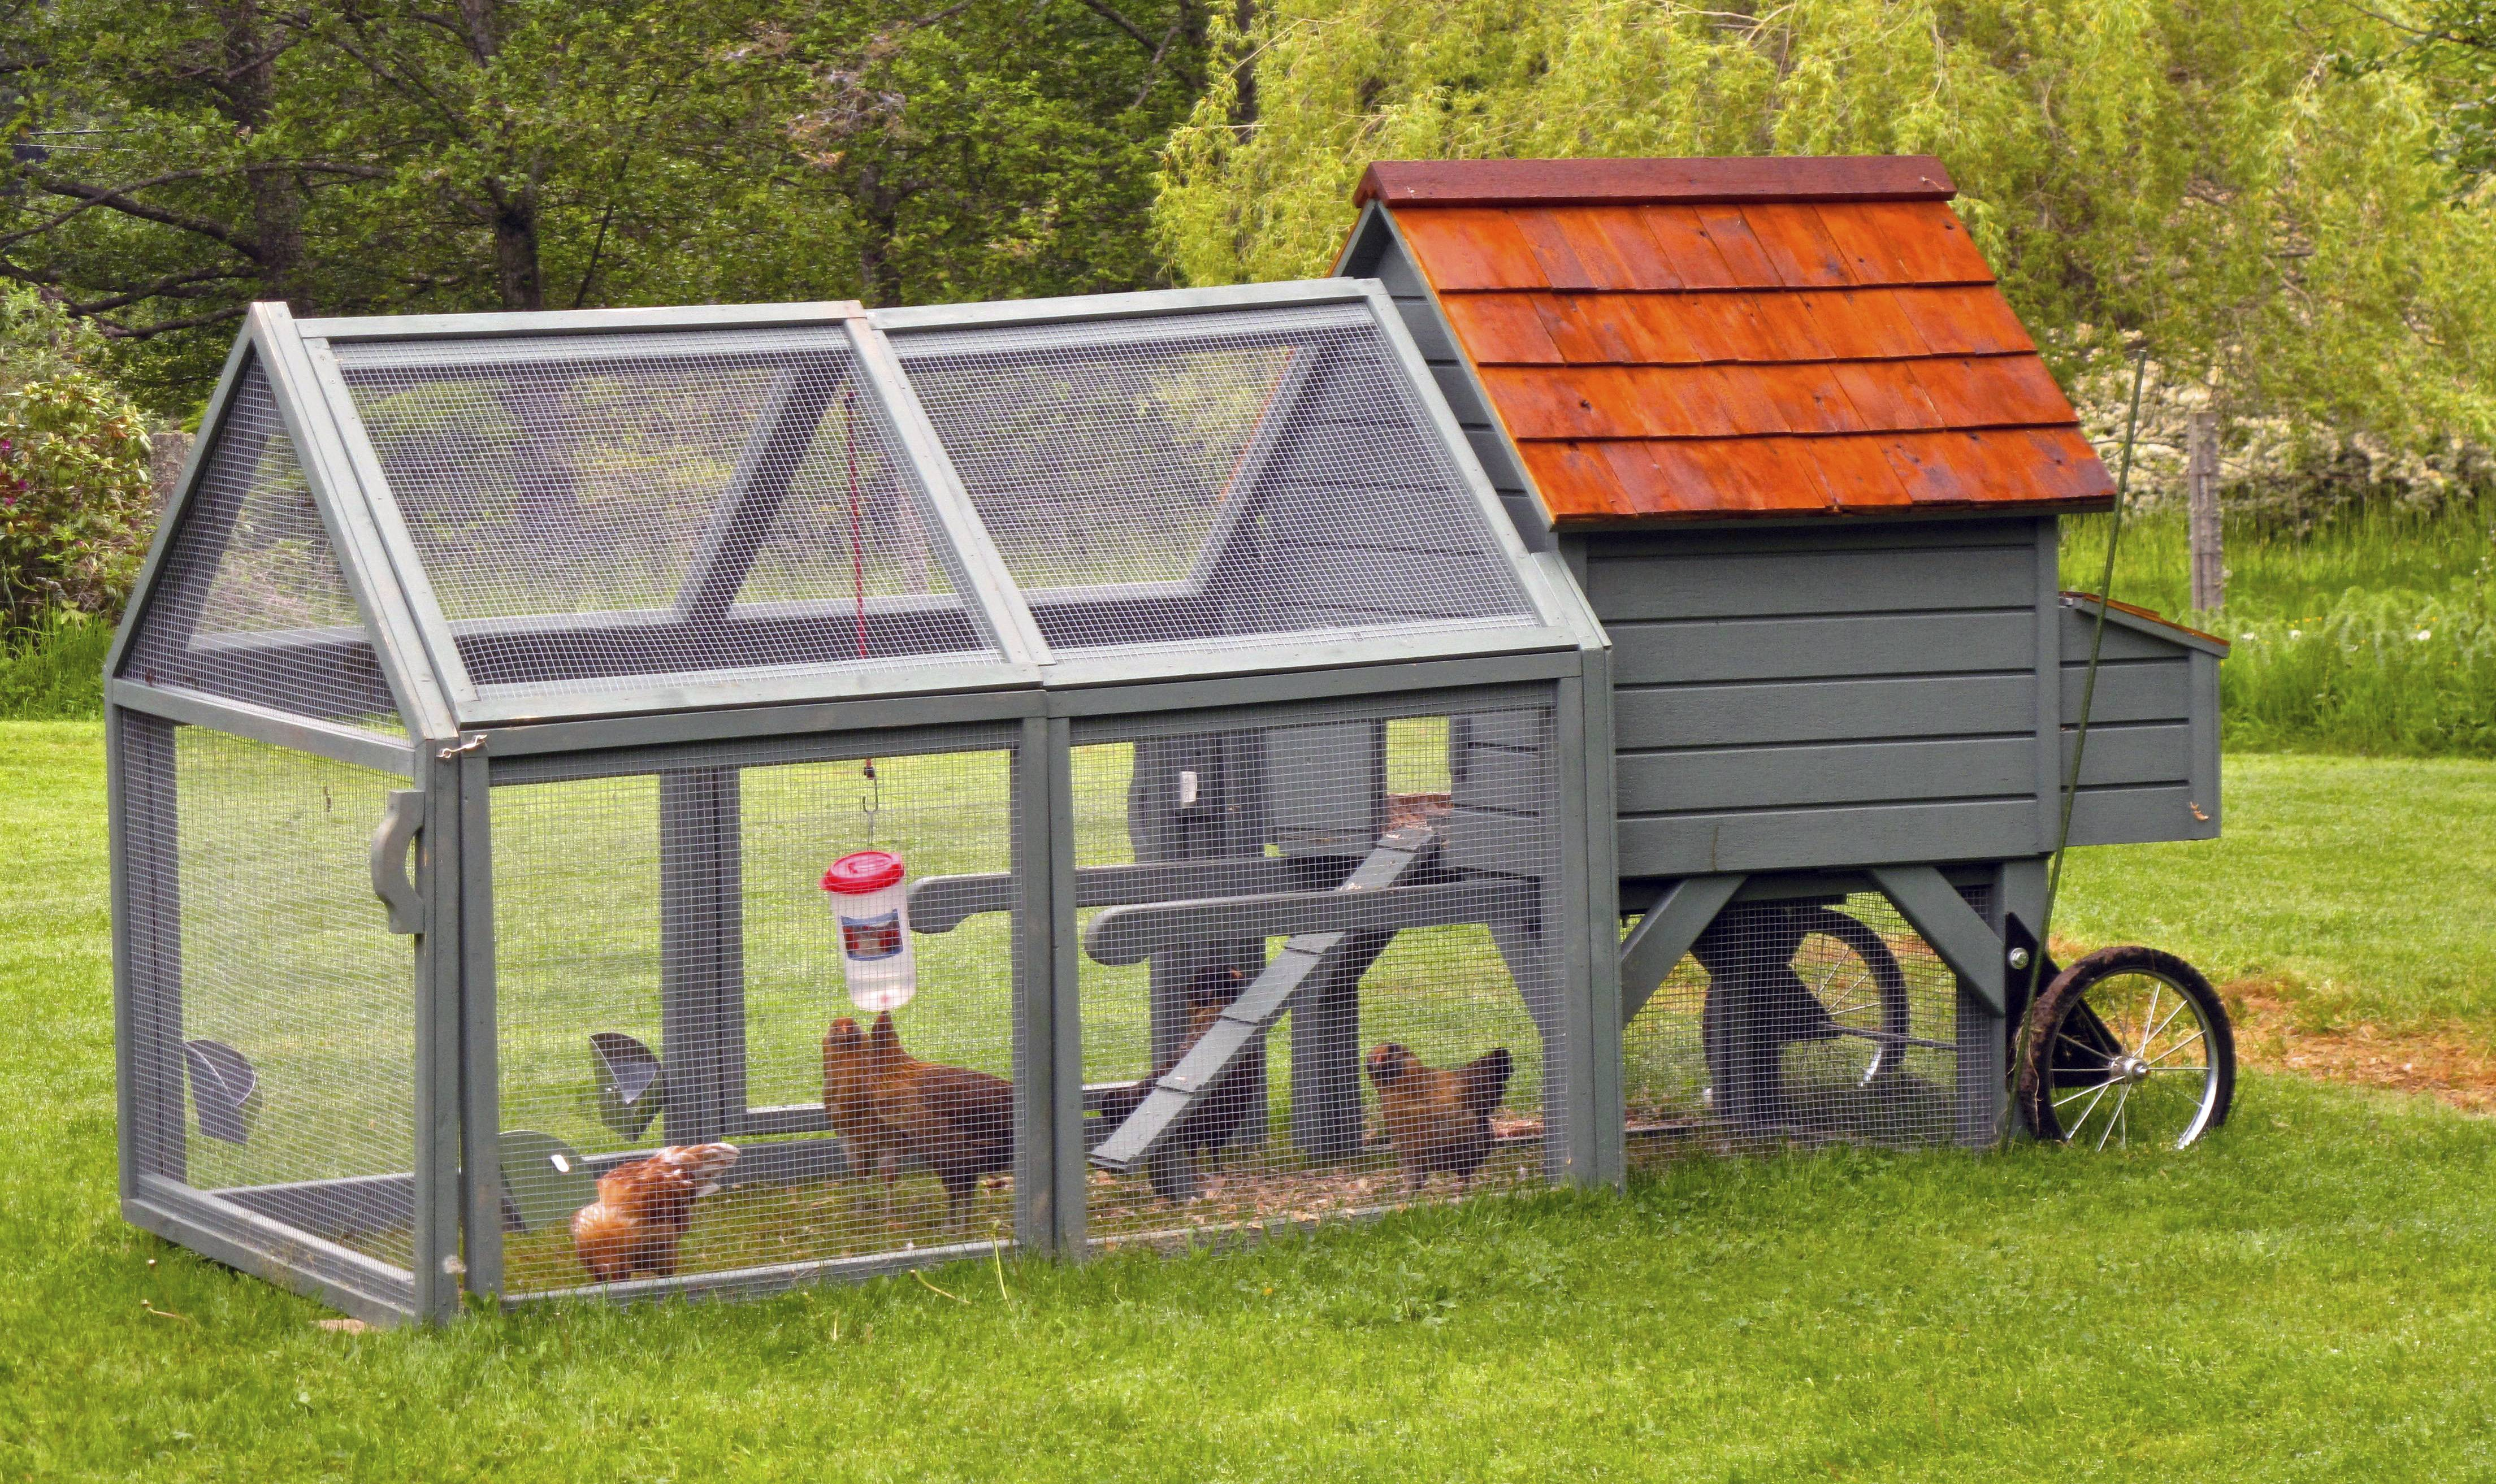 Five Hens Share A Chicken Tractor And Portable Coop. Put Your Backyard  Chickens To Work